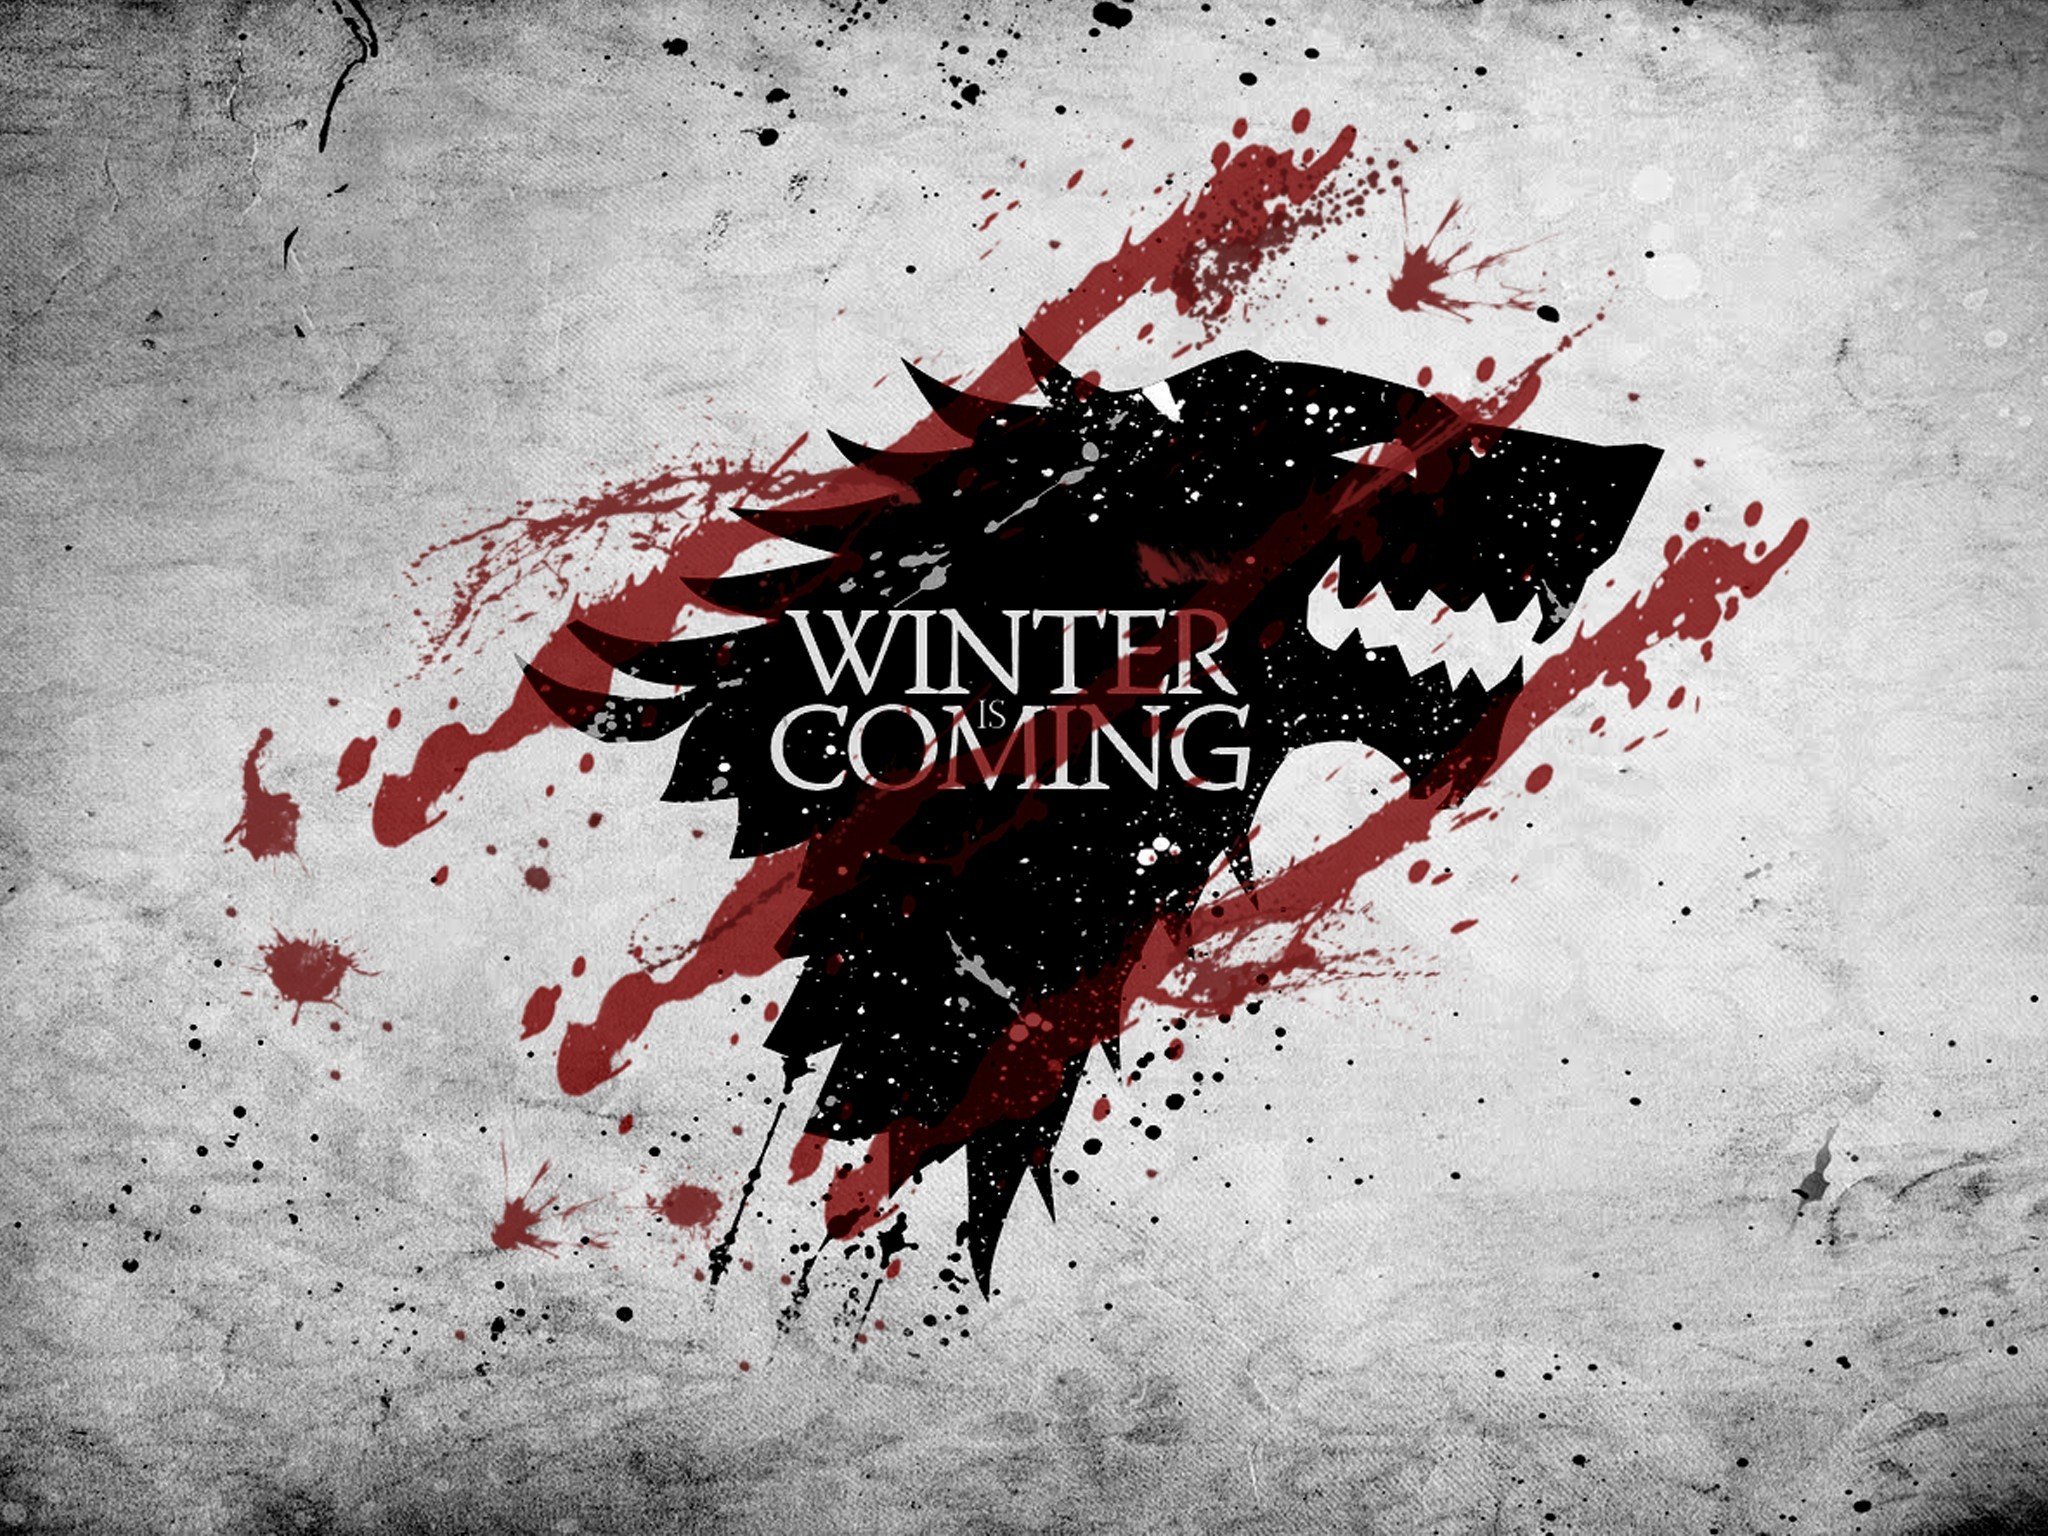 Game of Thrones Stark Wallpaper (77+ images)